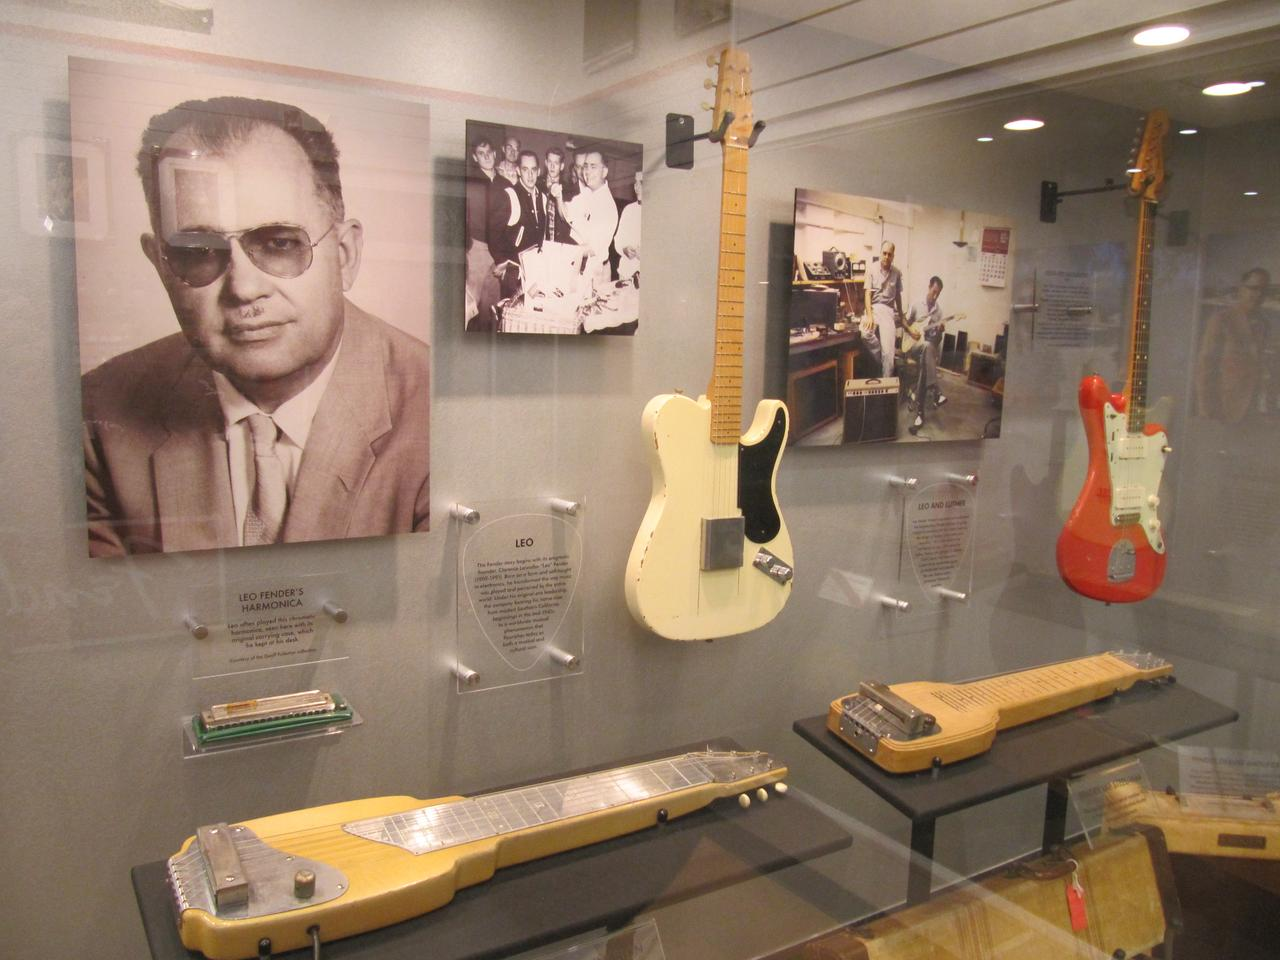 Photo of Leo Fender, along with some early guitar models on show at the Fender Guitar Factory Museum